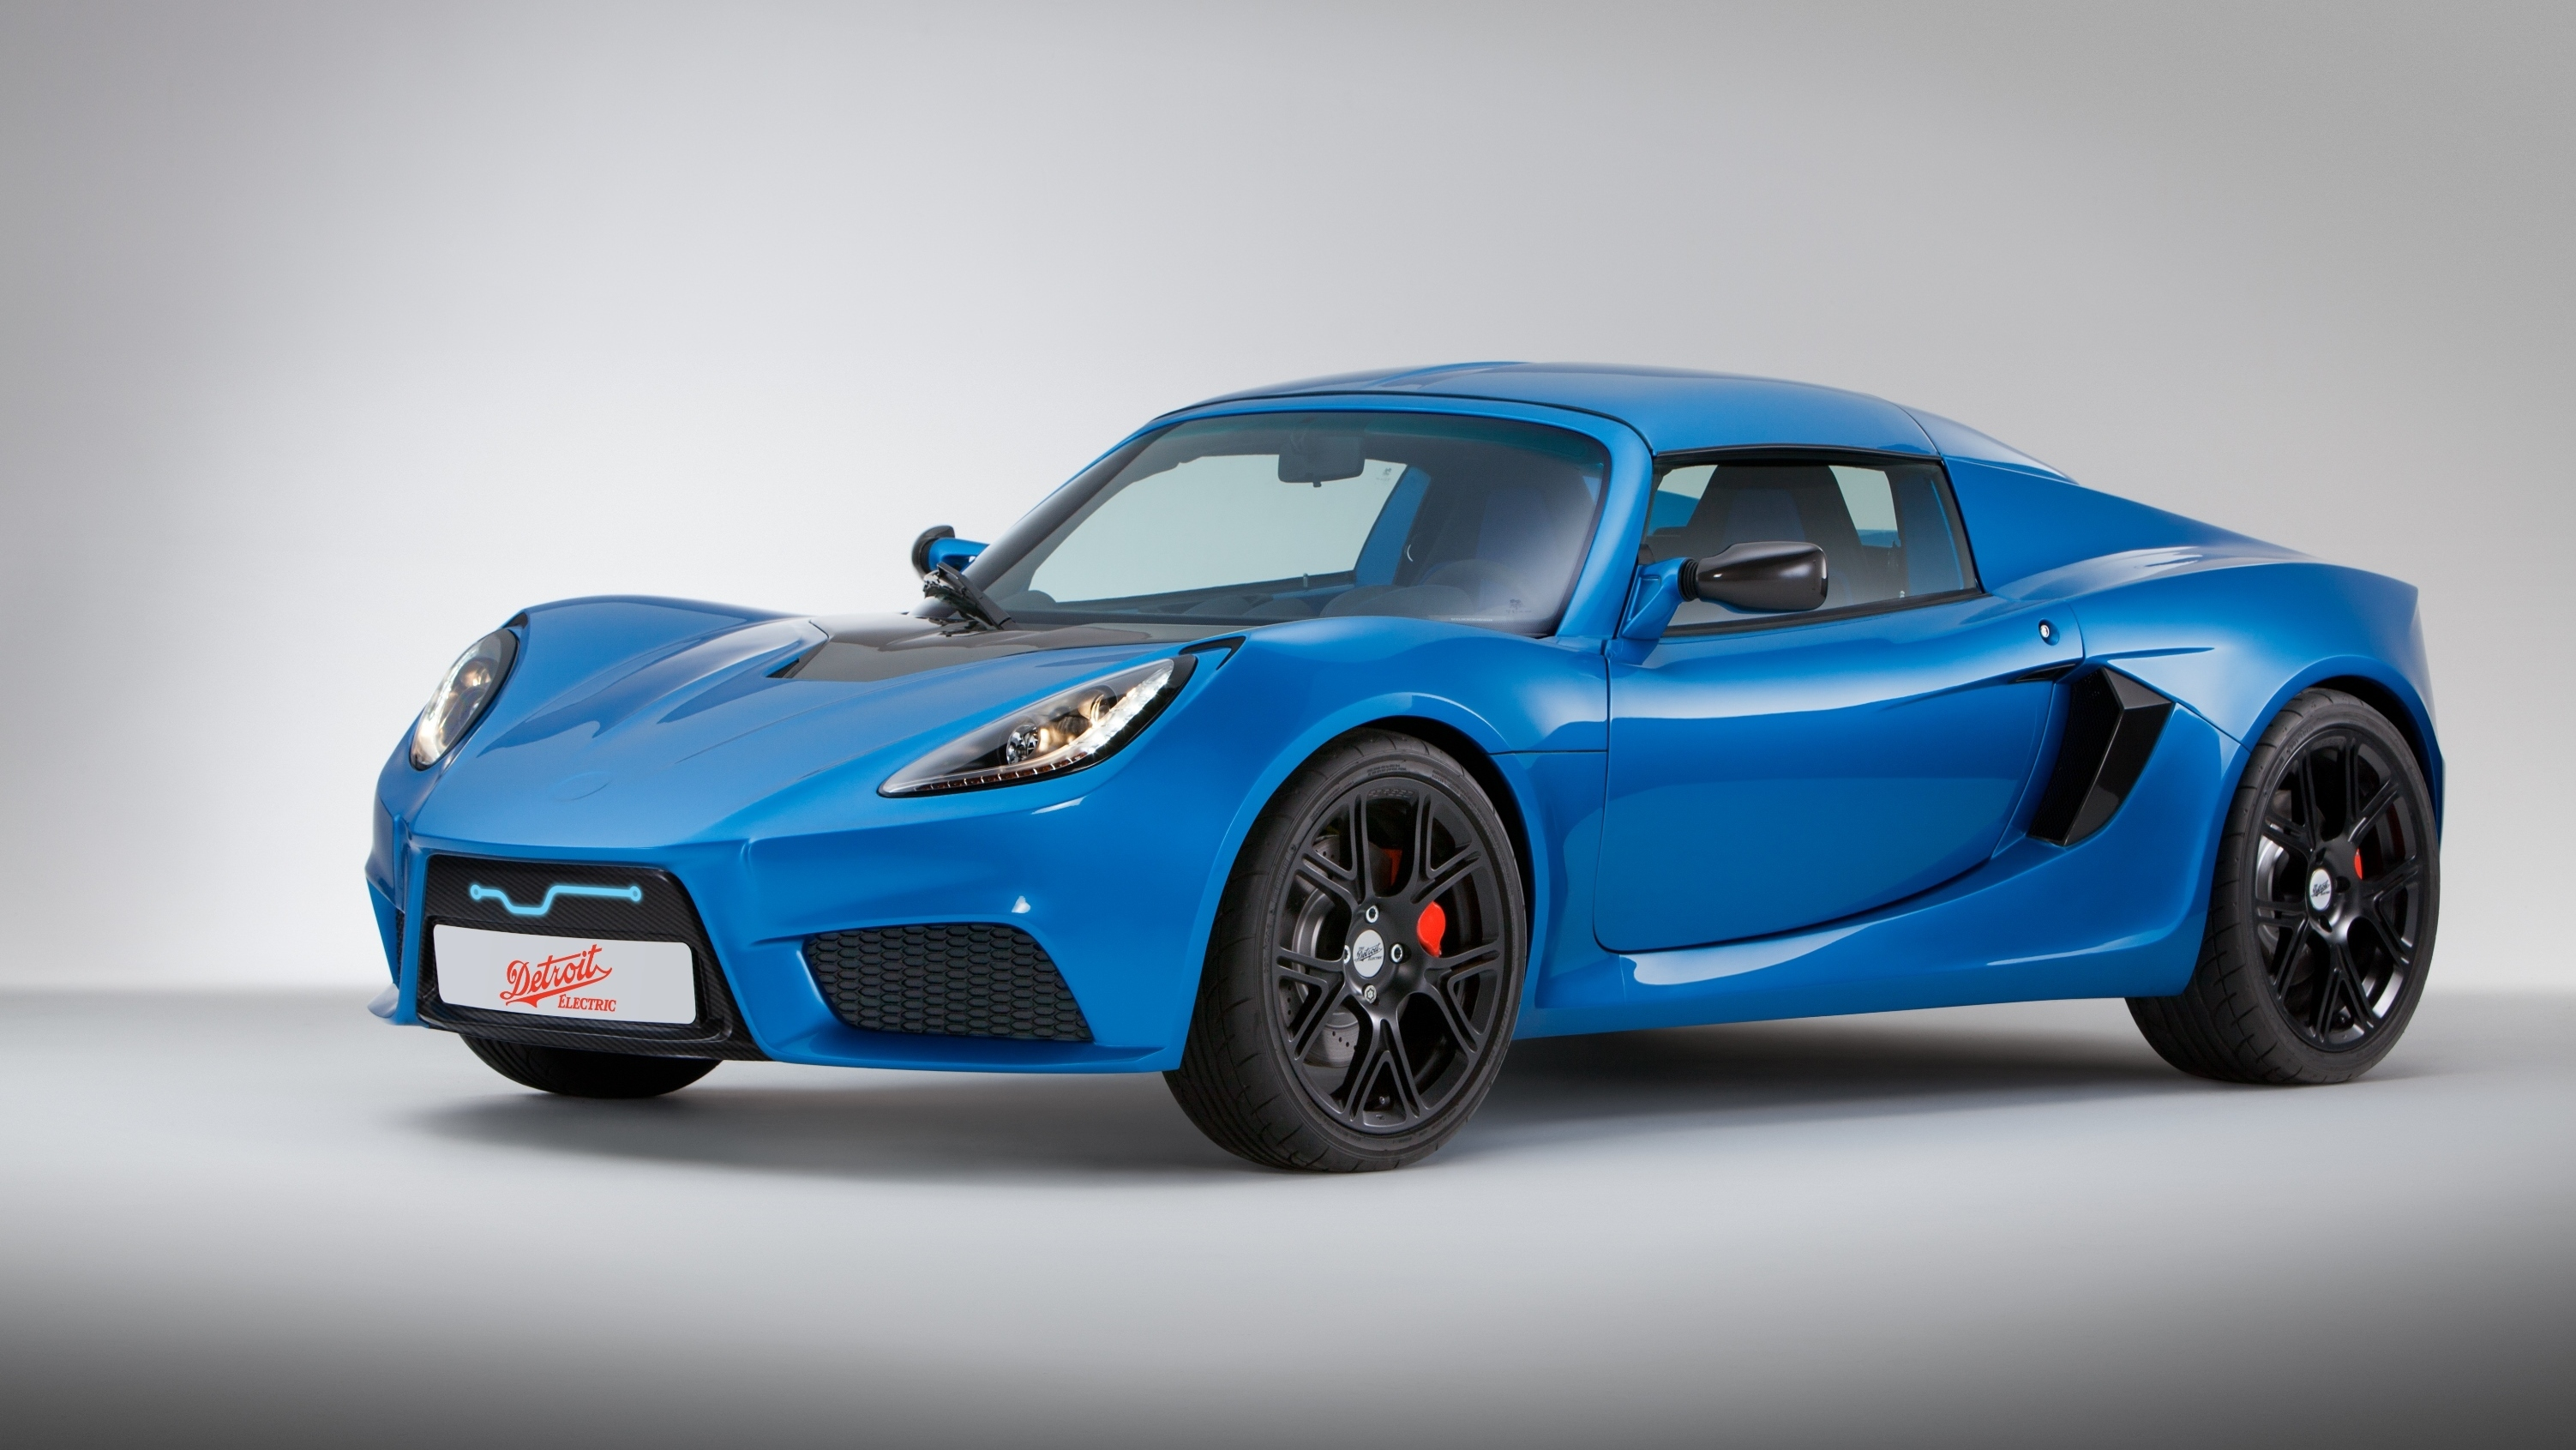 This image provided by Detroit Electric shows the automaker's SP:01, a limited-edition electric sports car. The company was revived in 2008. Last month it announced that production would be delayed by a month. The model is priced at $135,000.